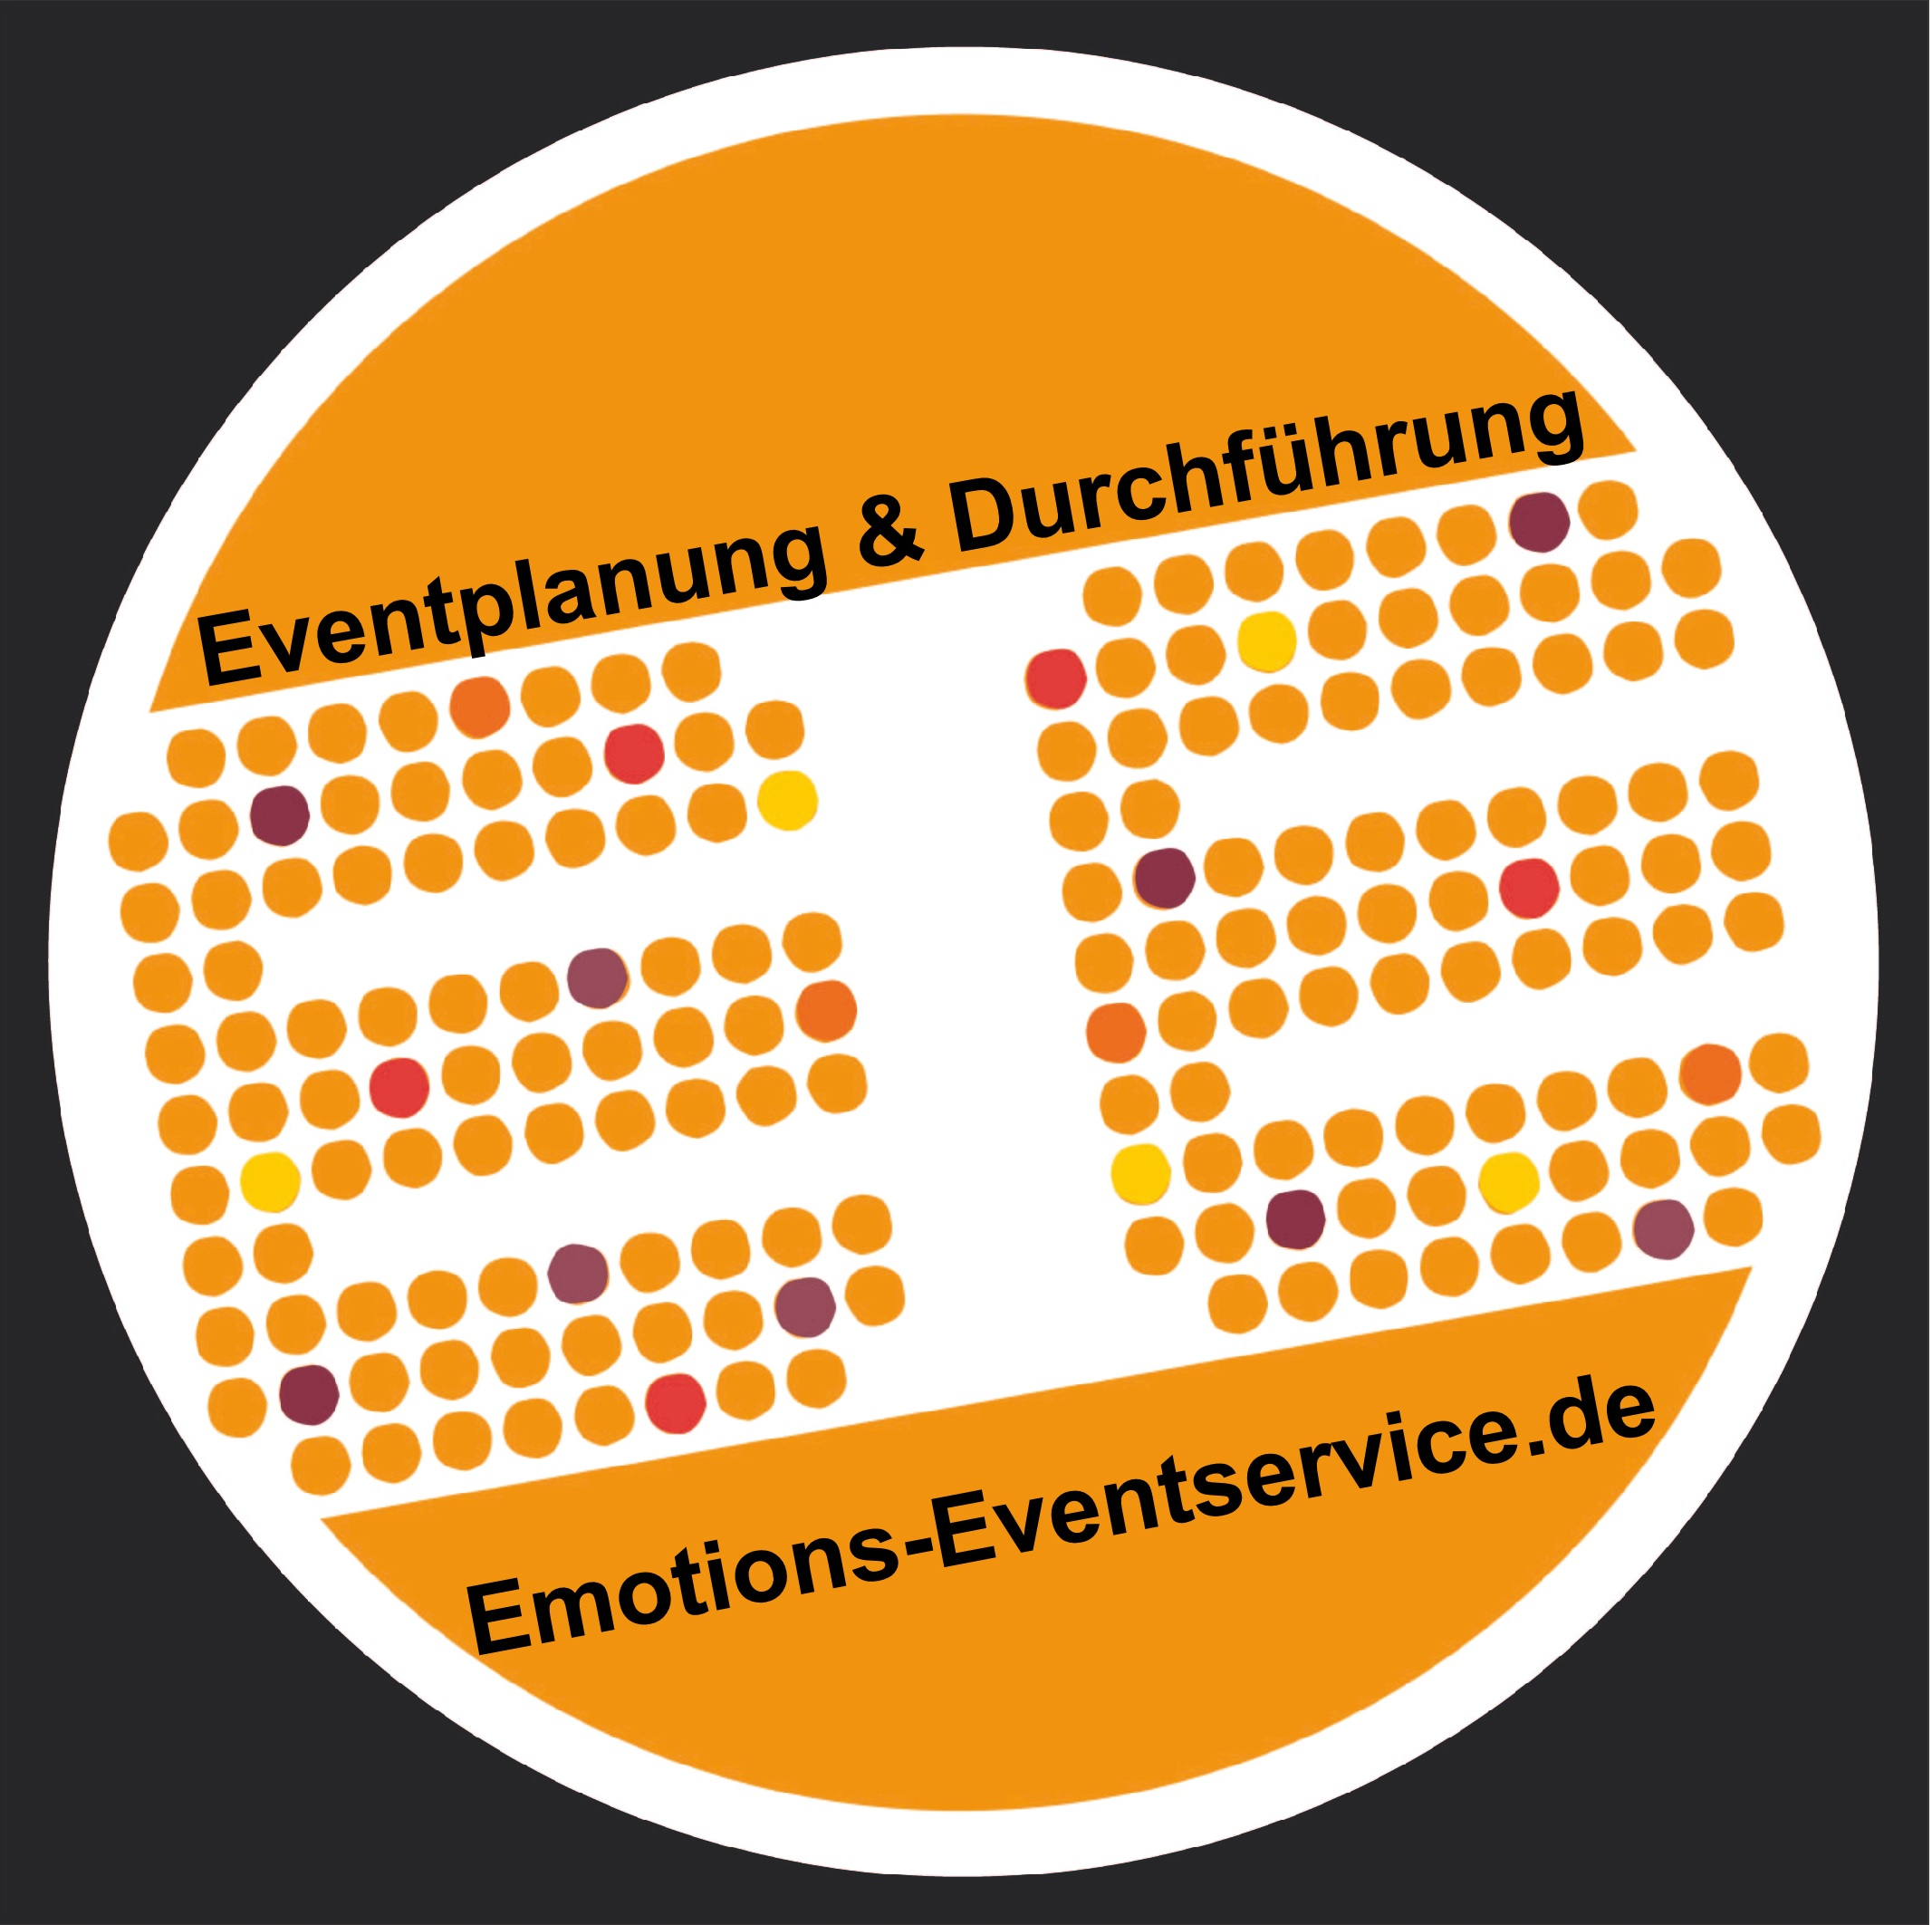 Emotions Eventservice